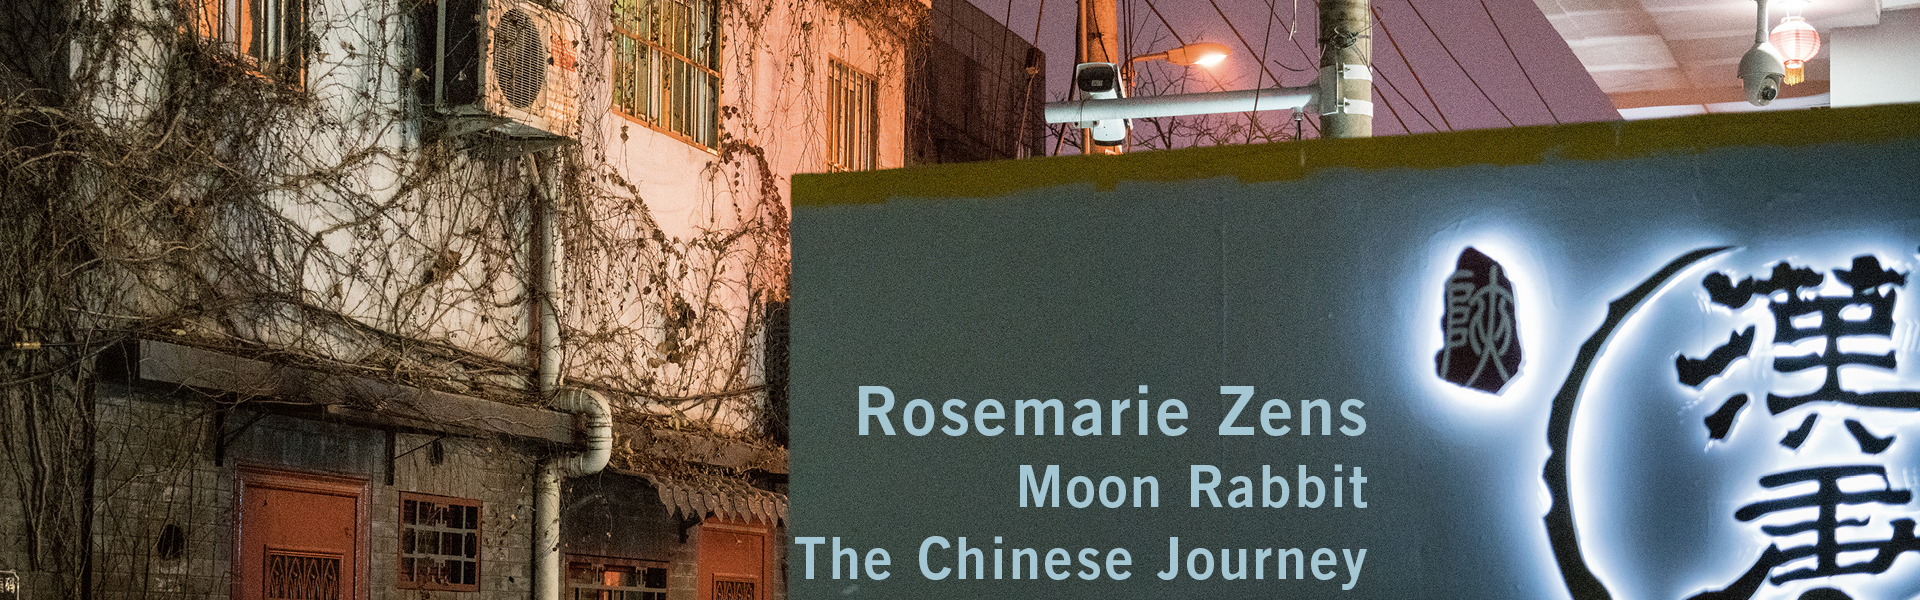 Rosemarie Zens: Moon Rabbit